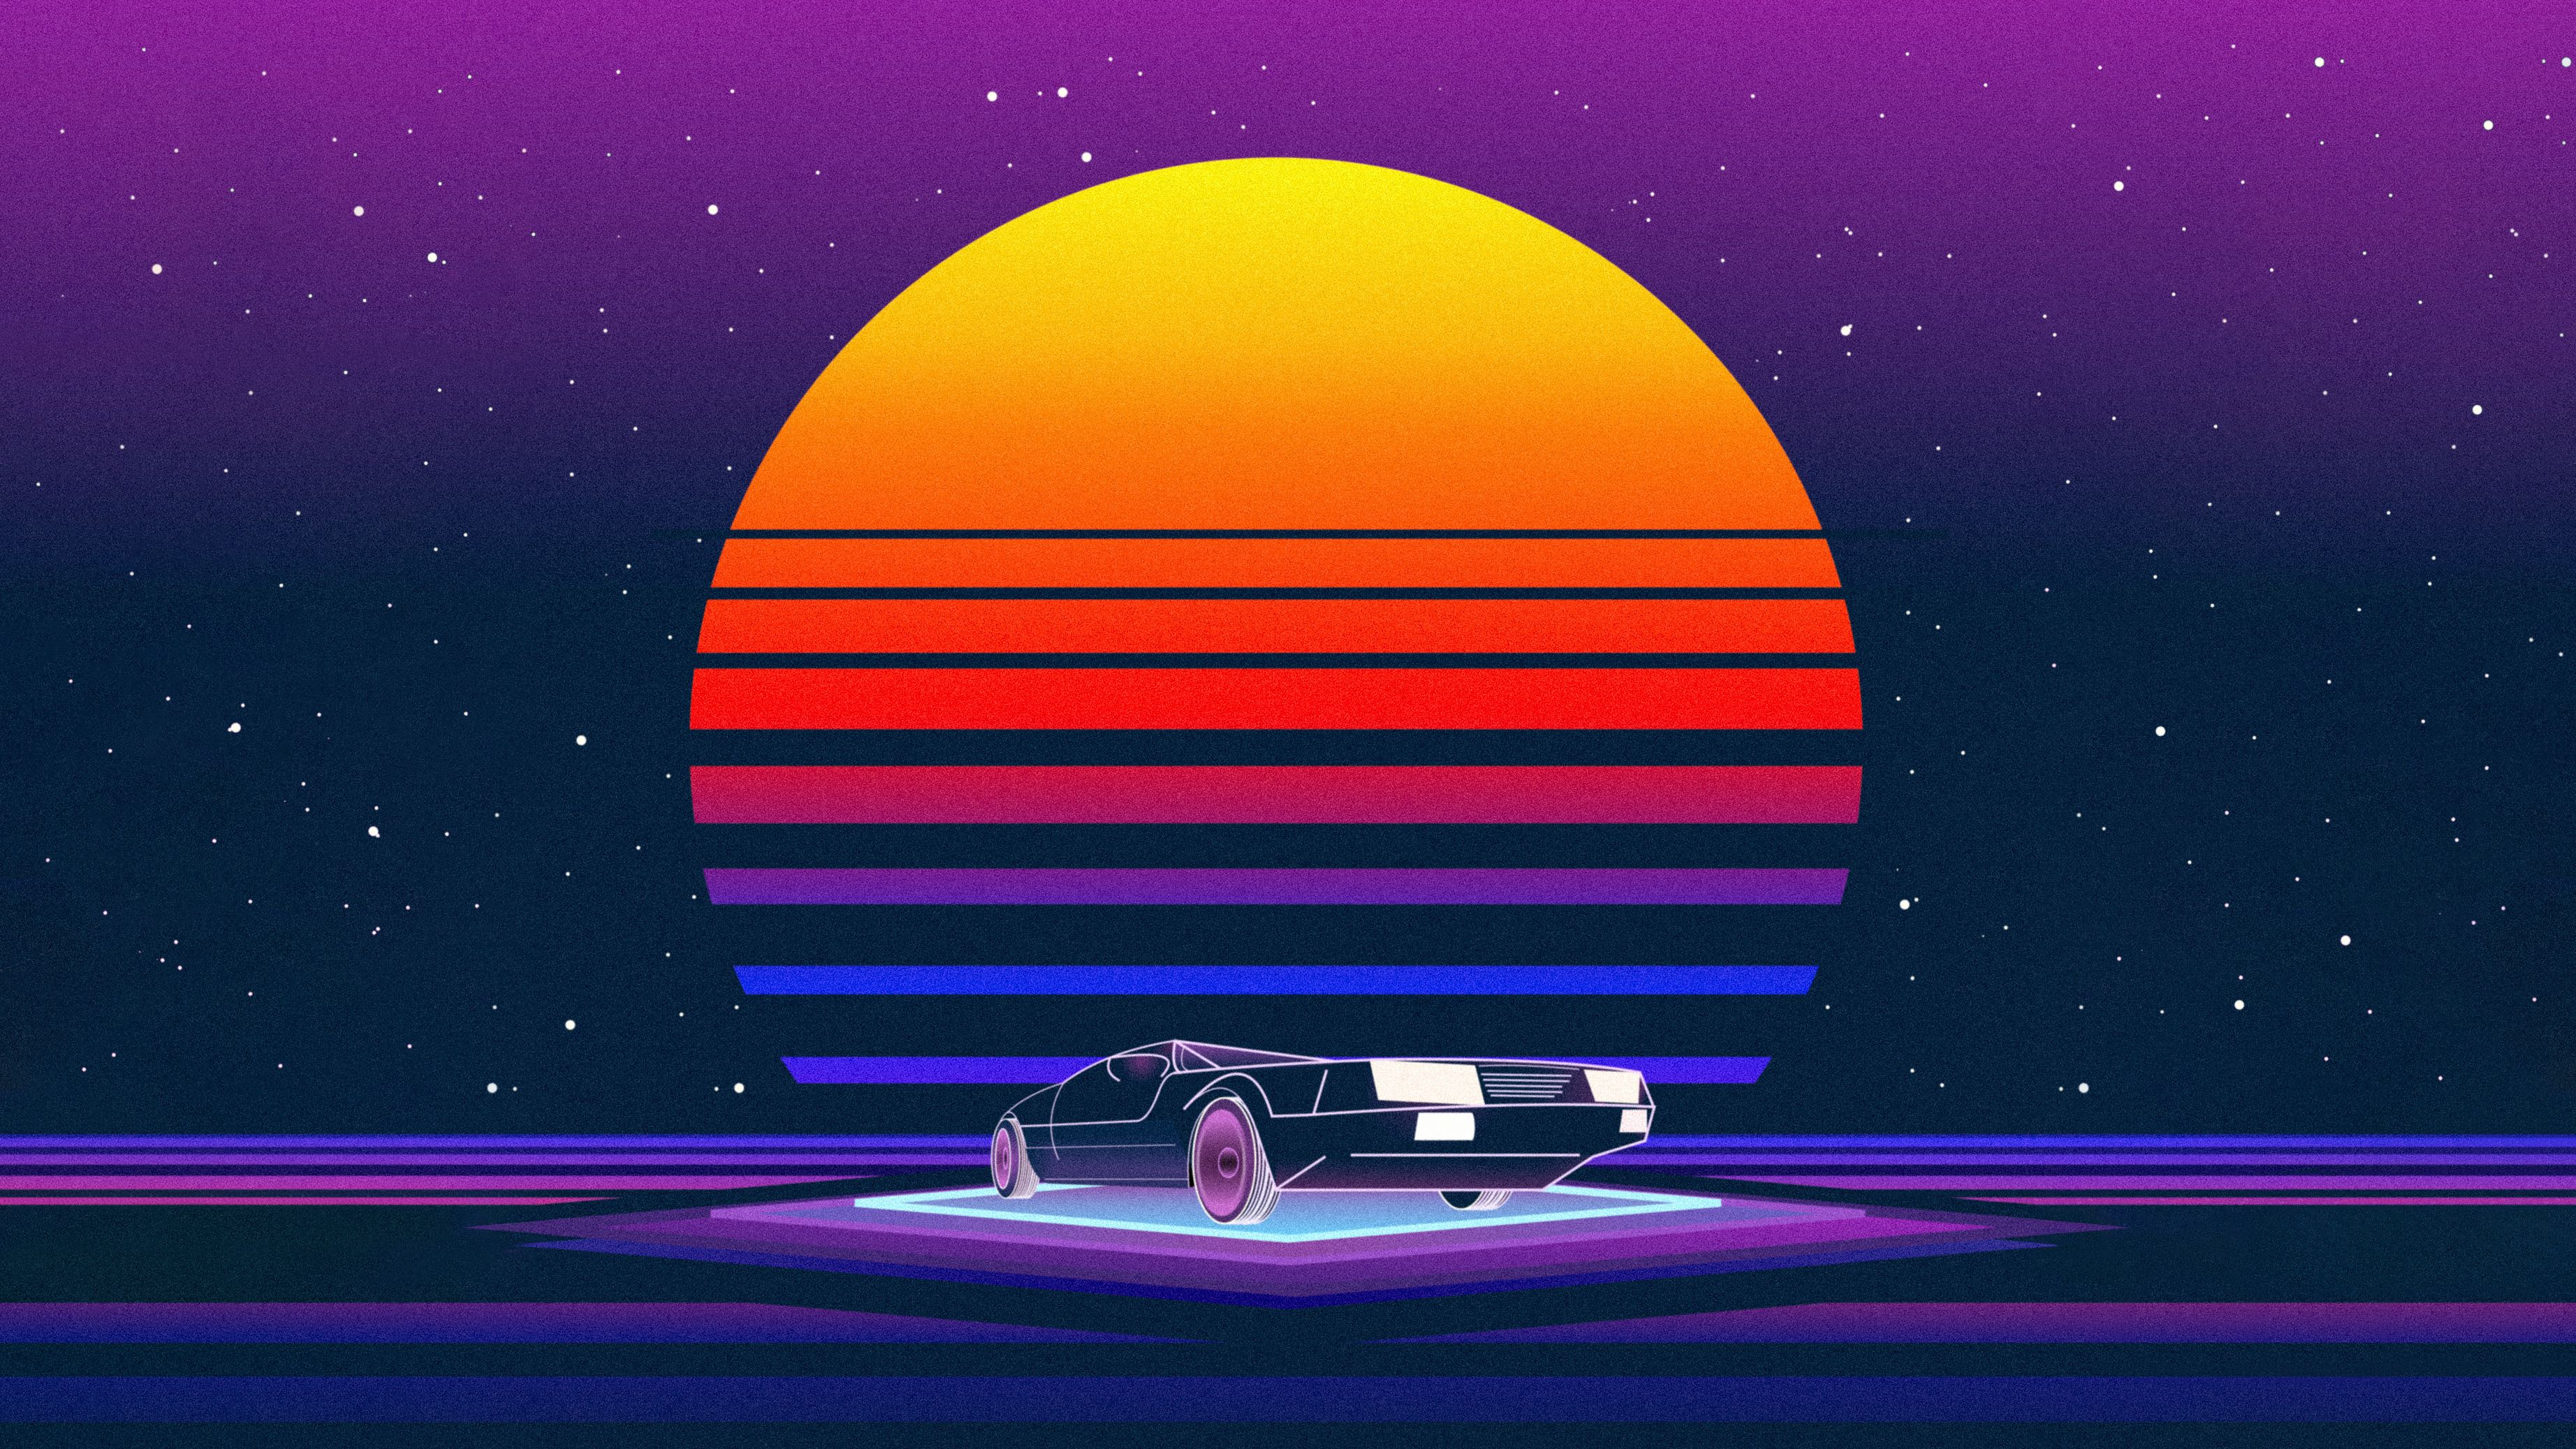 Retro Wave Wallpapers   Top Retro Wave Backgrounds 3688x2075